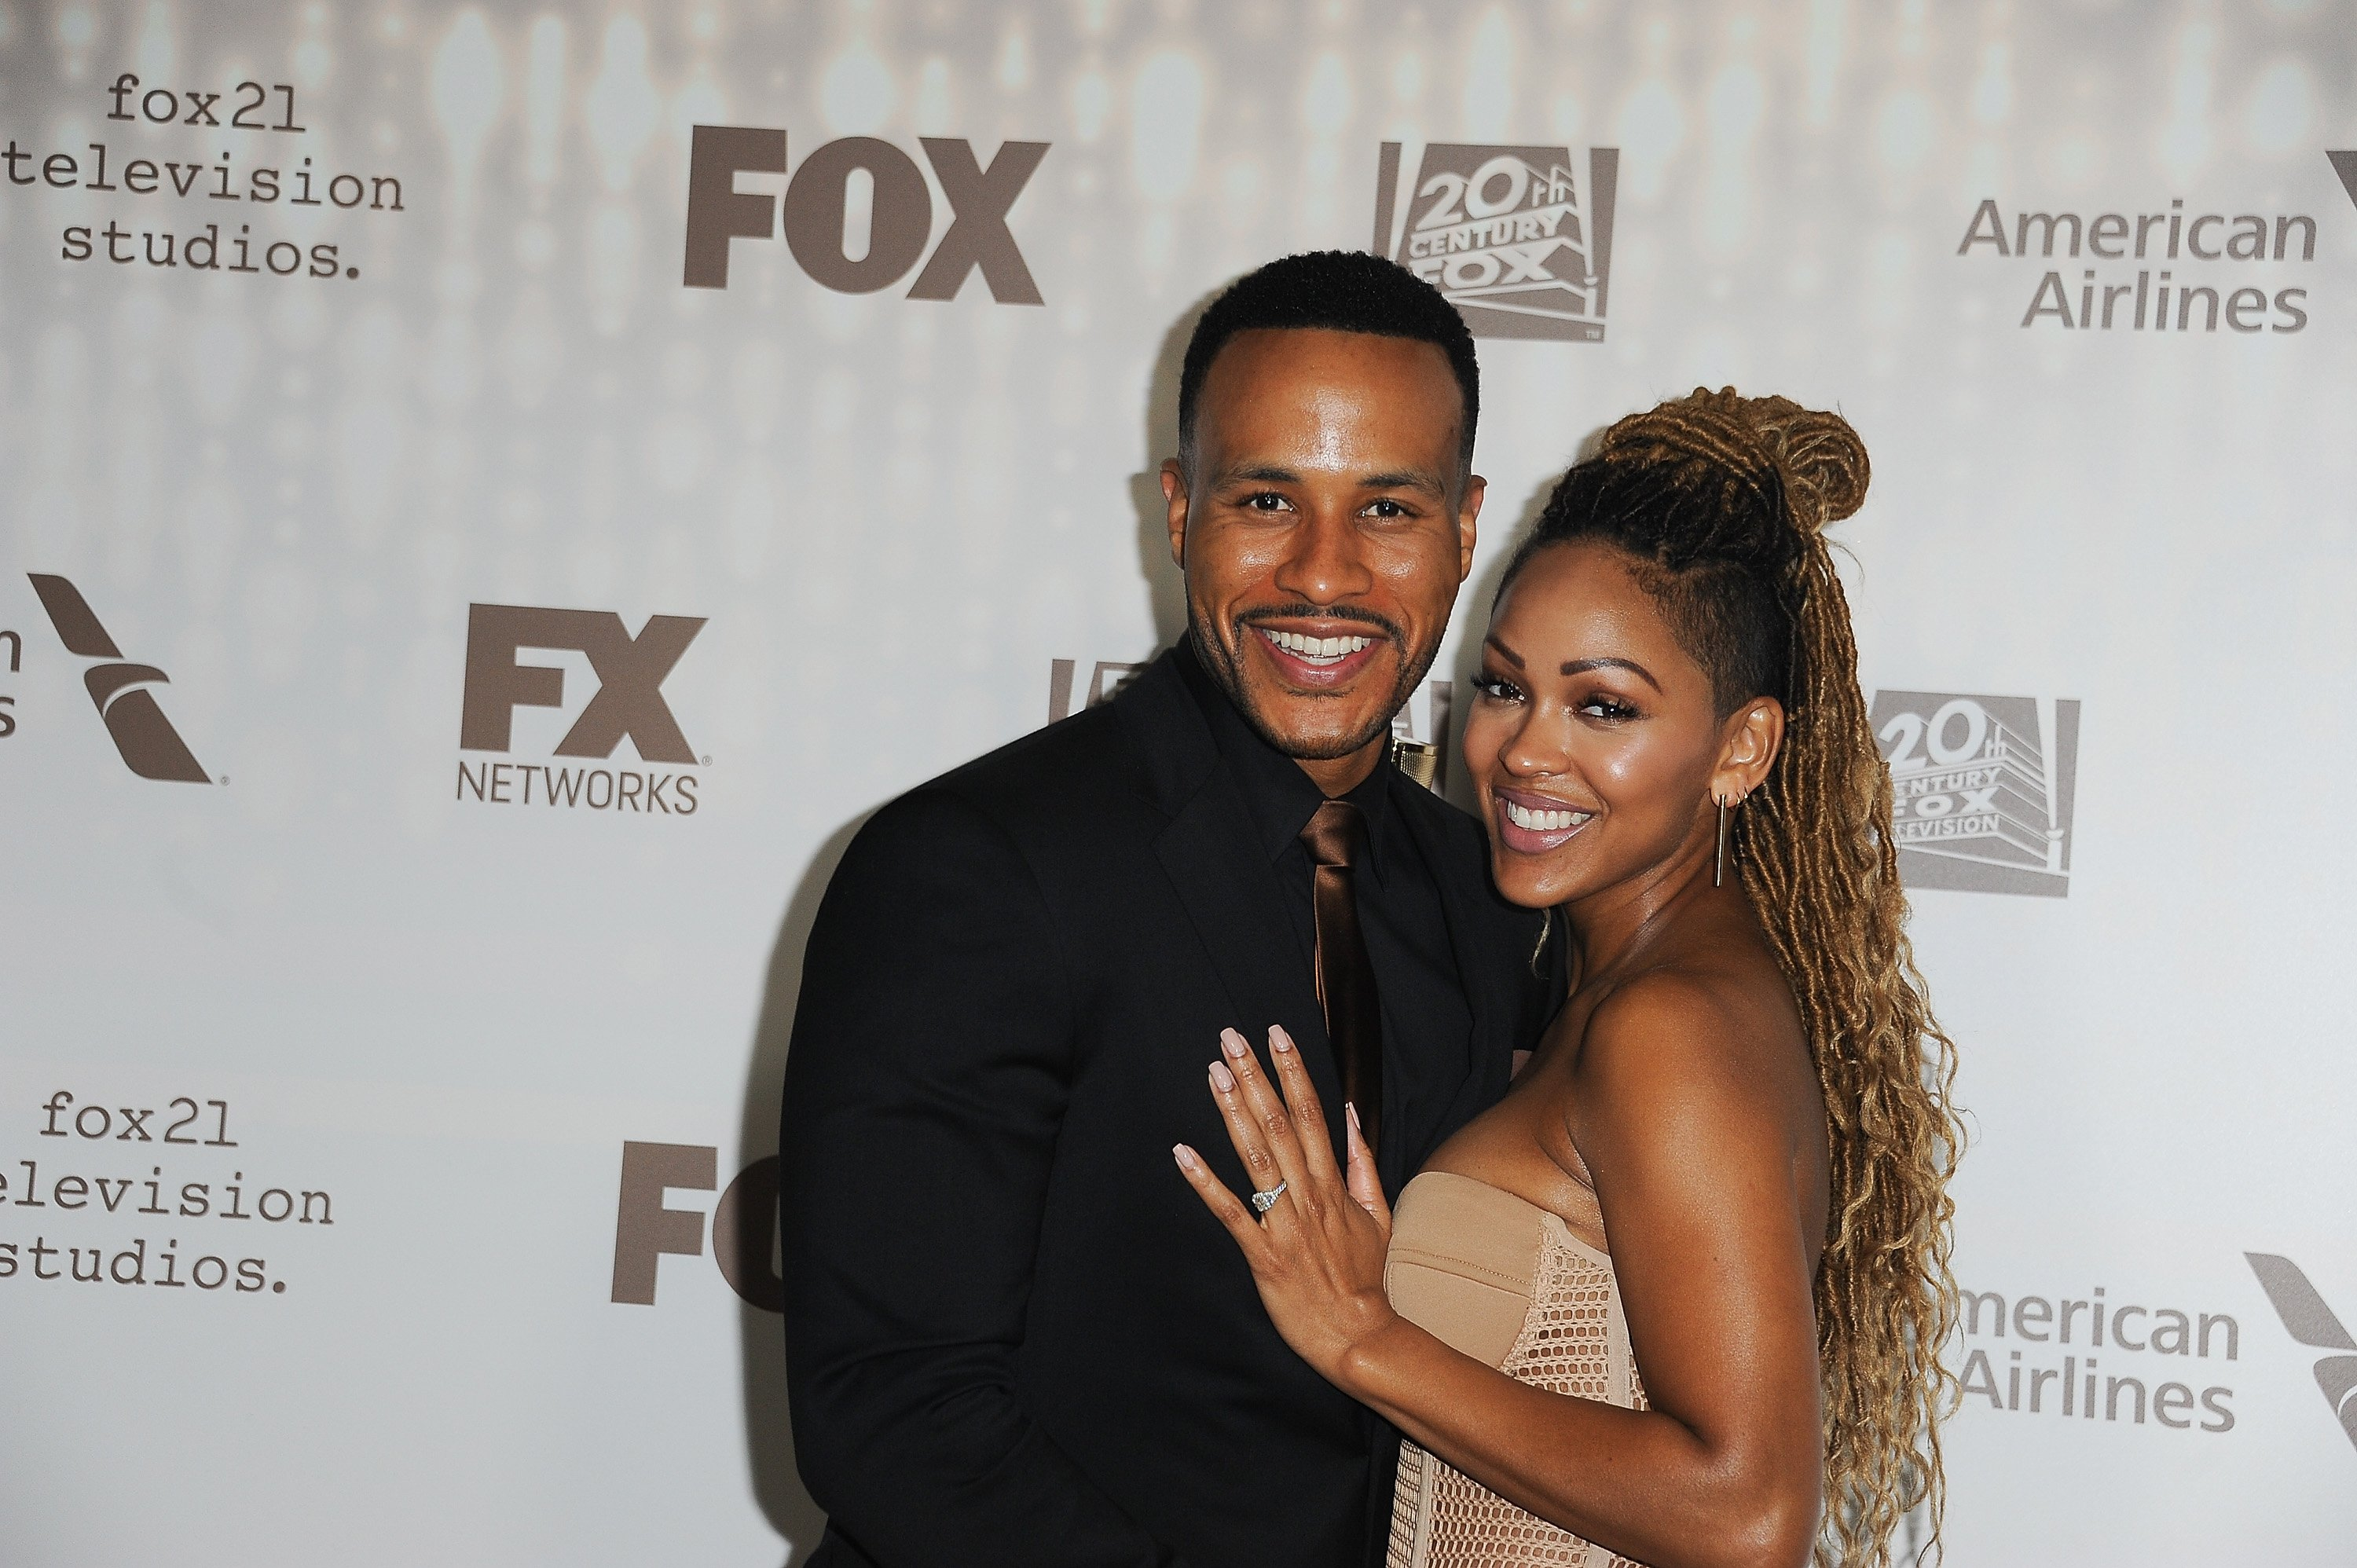 DeVon Franklin and Meagan Good at the 2017 Golden Globe Awards after-party on January 8, 2017 | Source: Getty Images/GlobalImagesUkraine